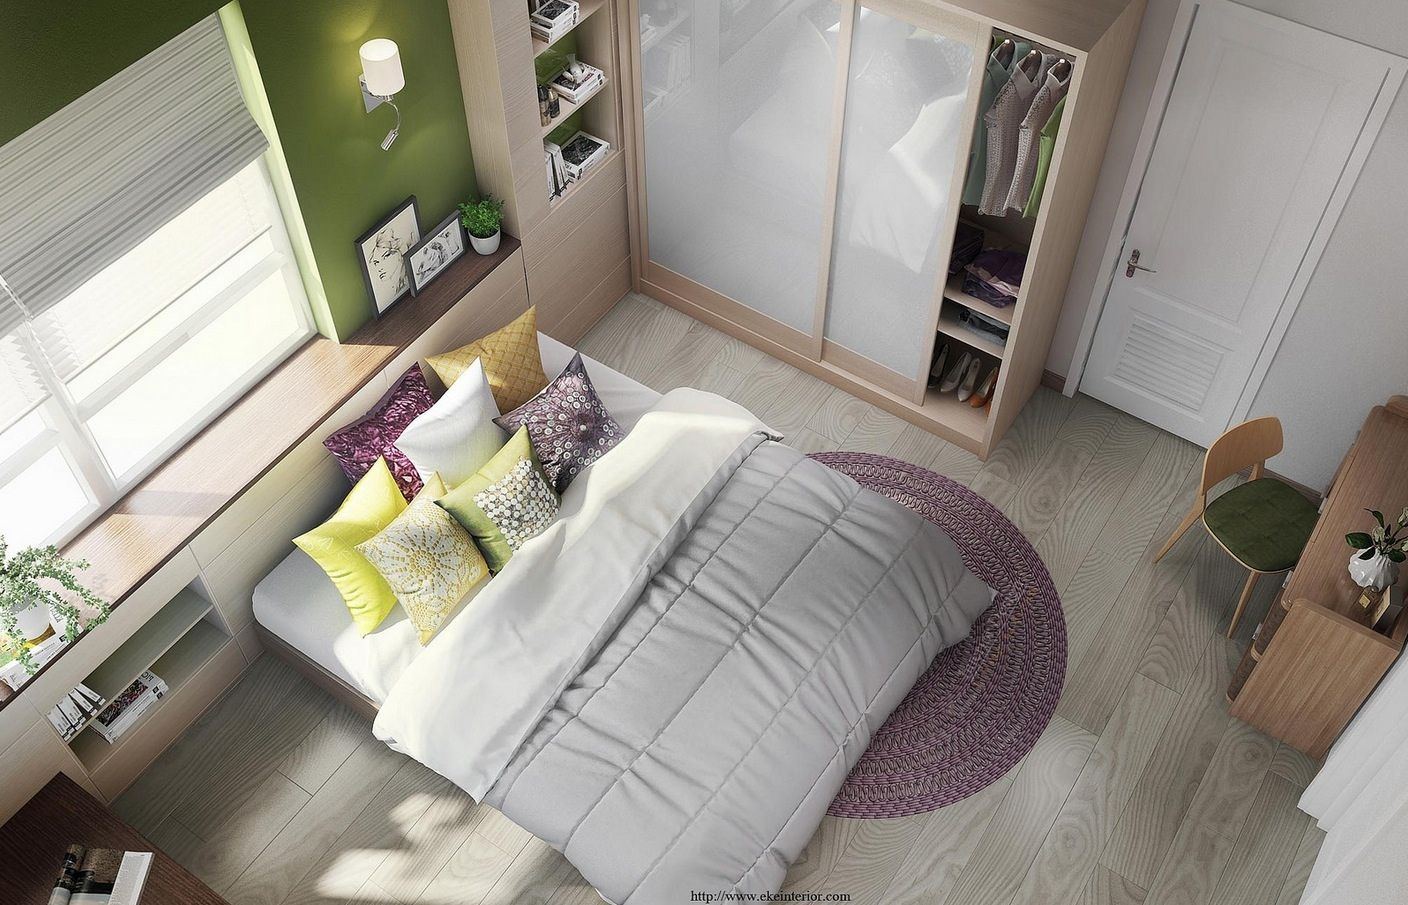 modern bedroom designs%0A Home Decor Ideas presents you with the best bedroom decor ideas and several  types of rugs with variable colors  shapes  sizes and material